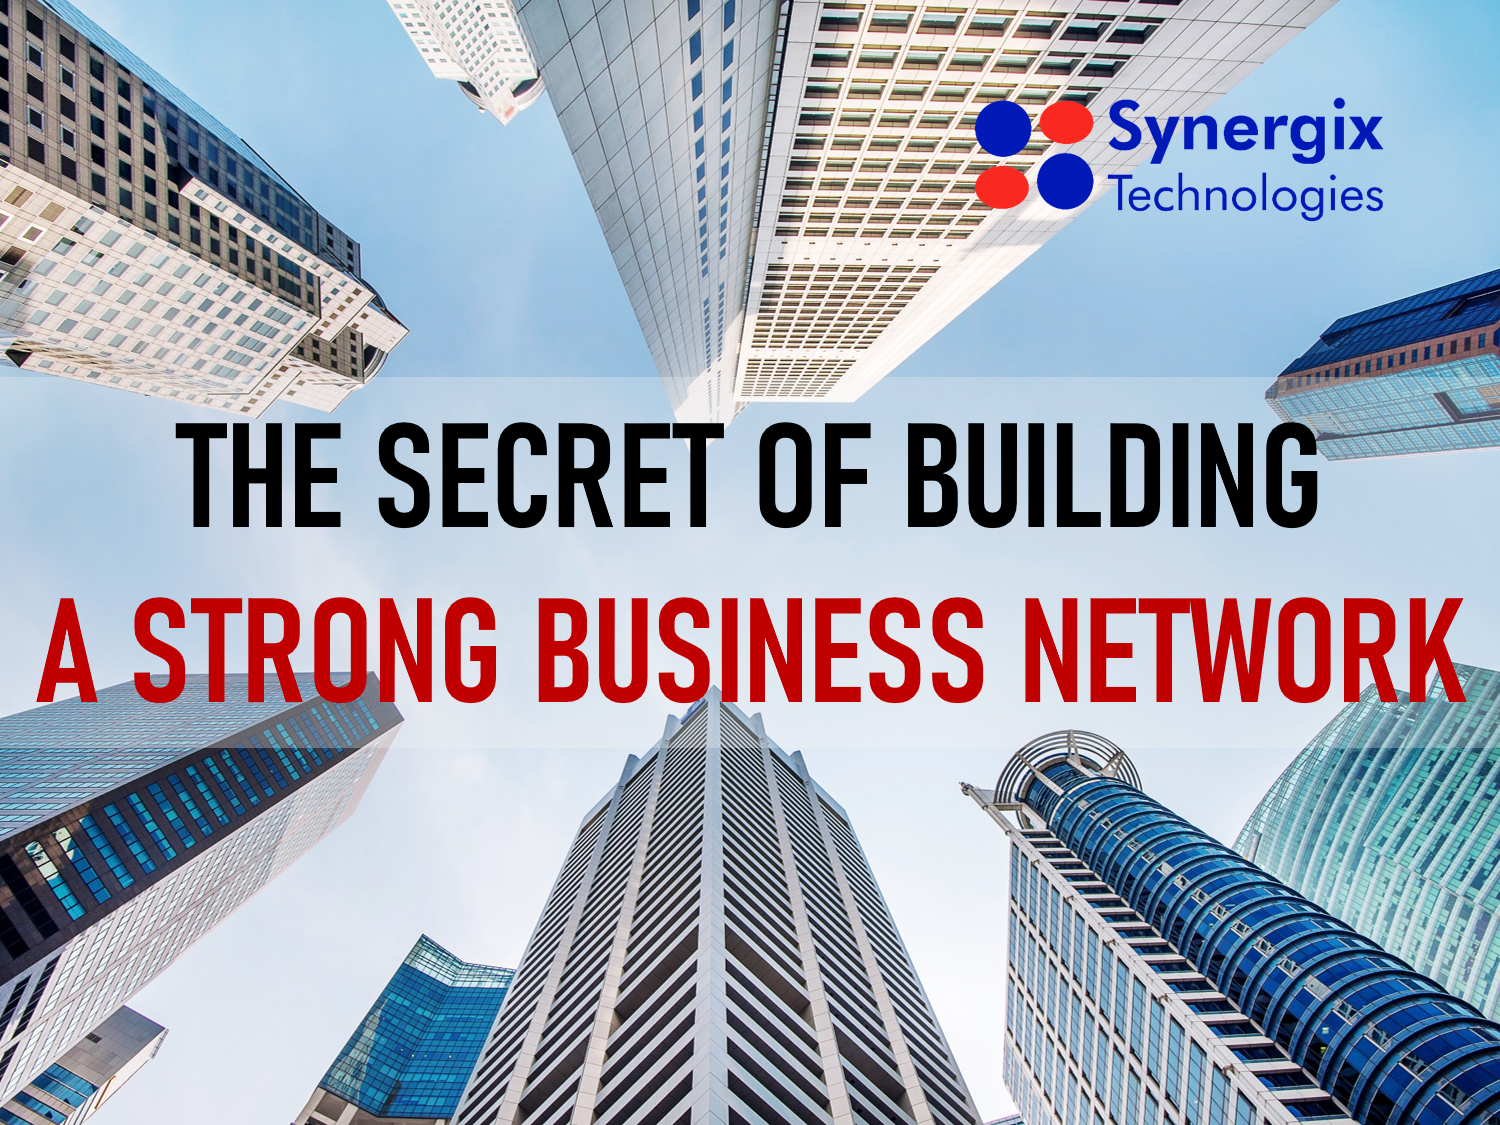 The Secret of Building A Strong Business Network